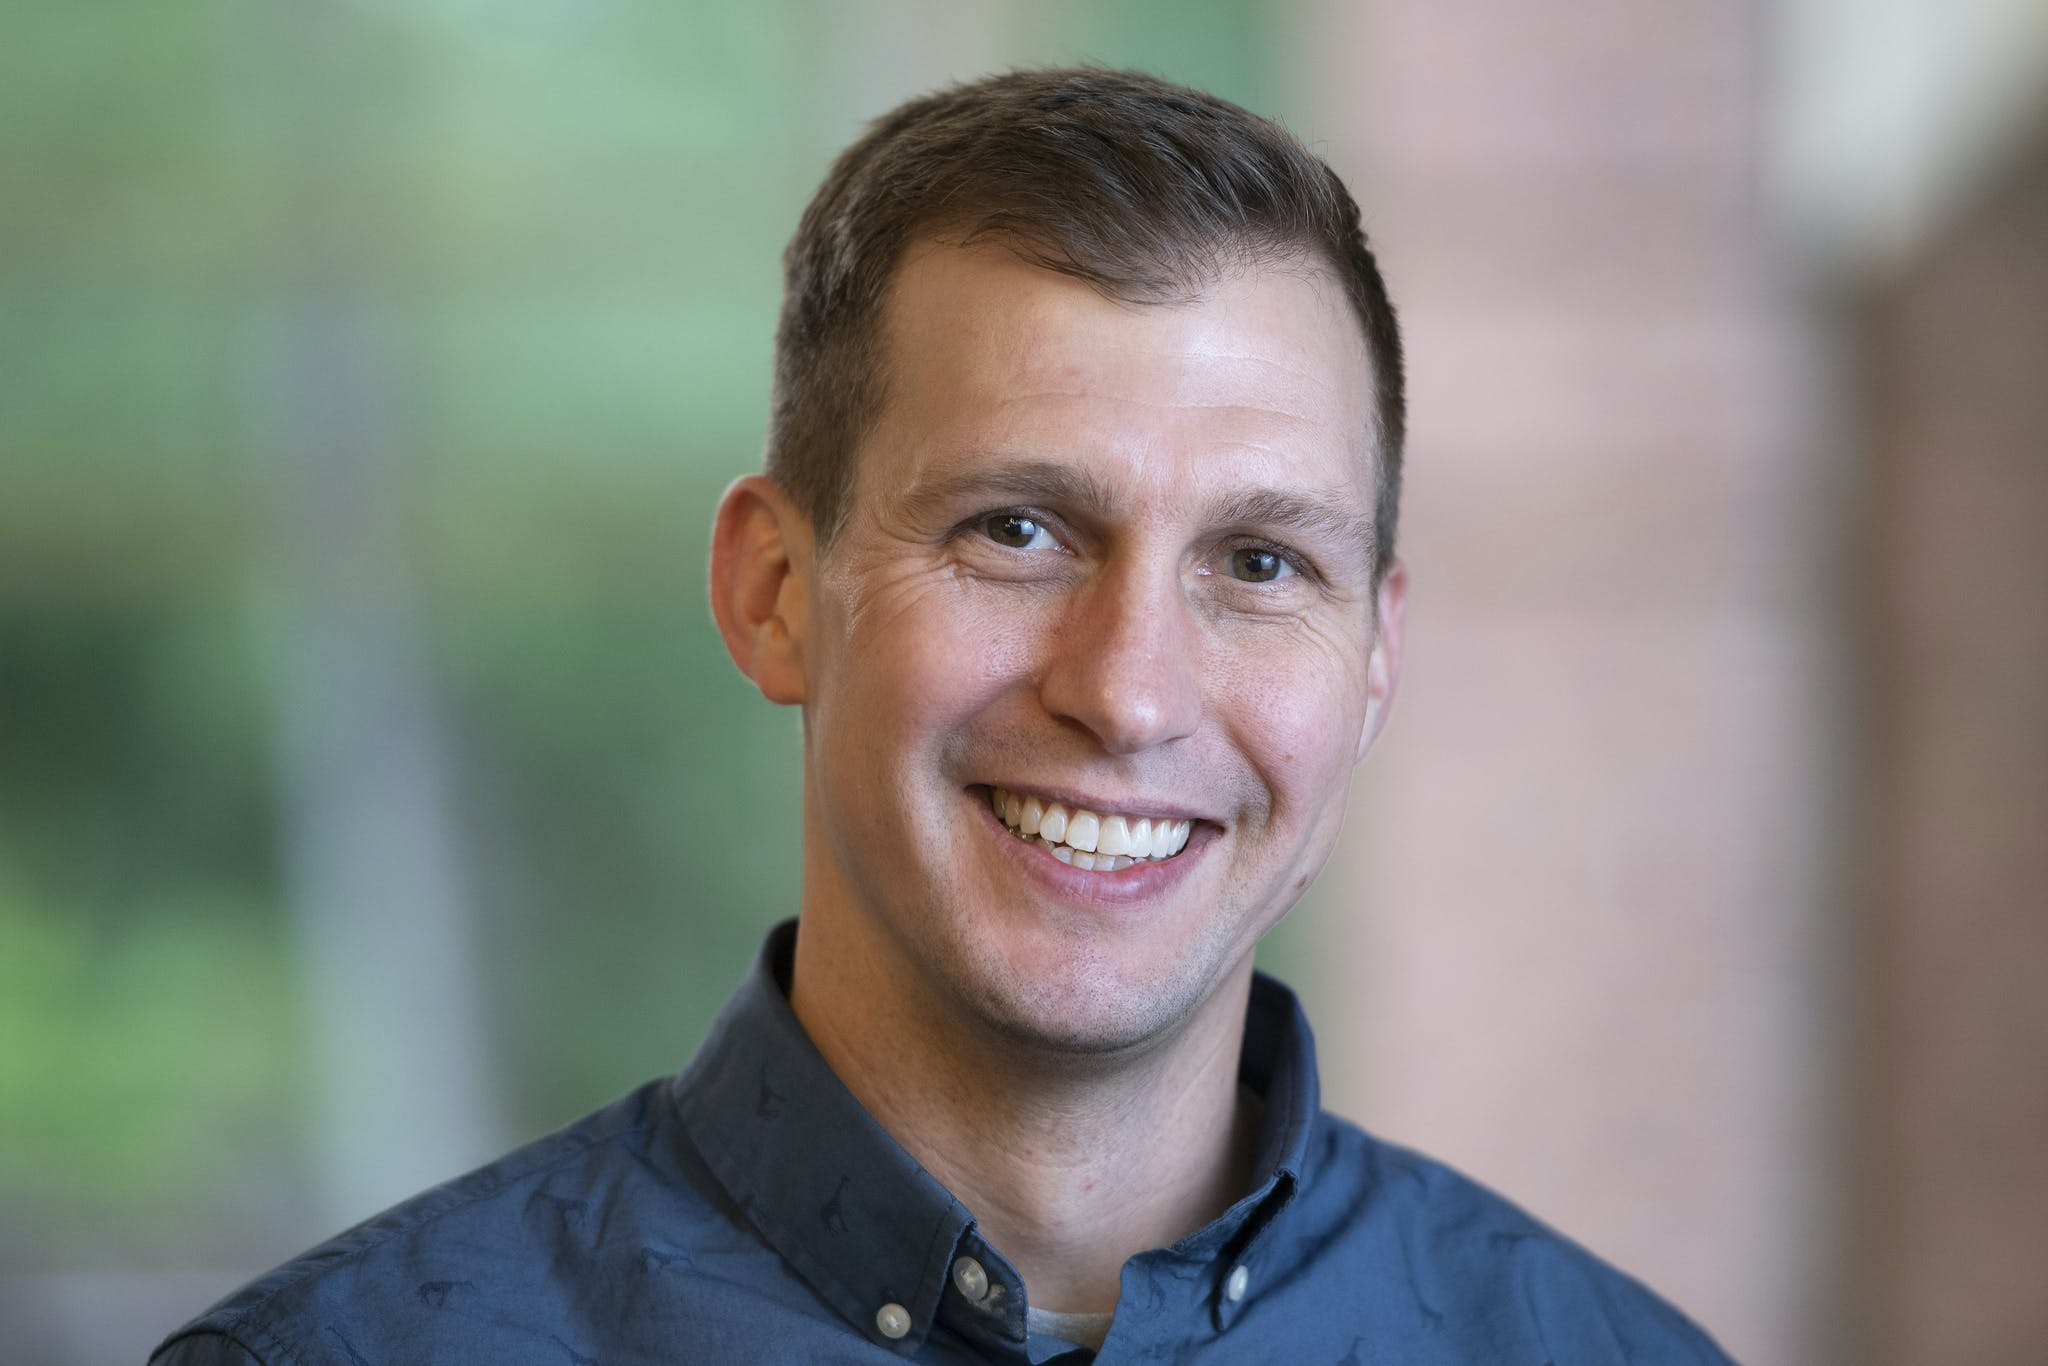 Michael Vedders '04, GS'07, chief enrollment and marketing officer